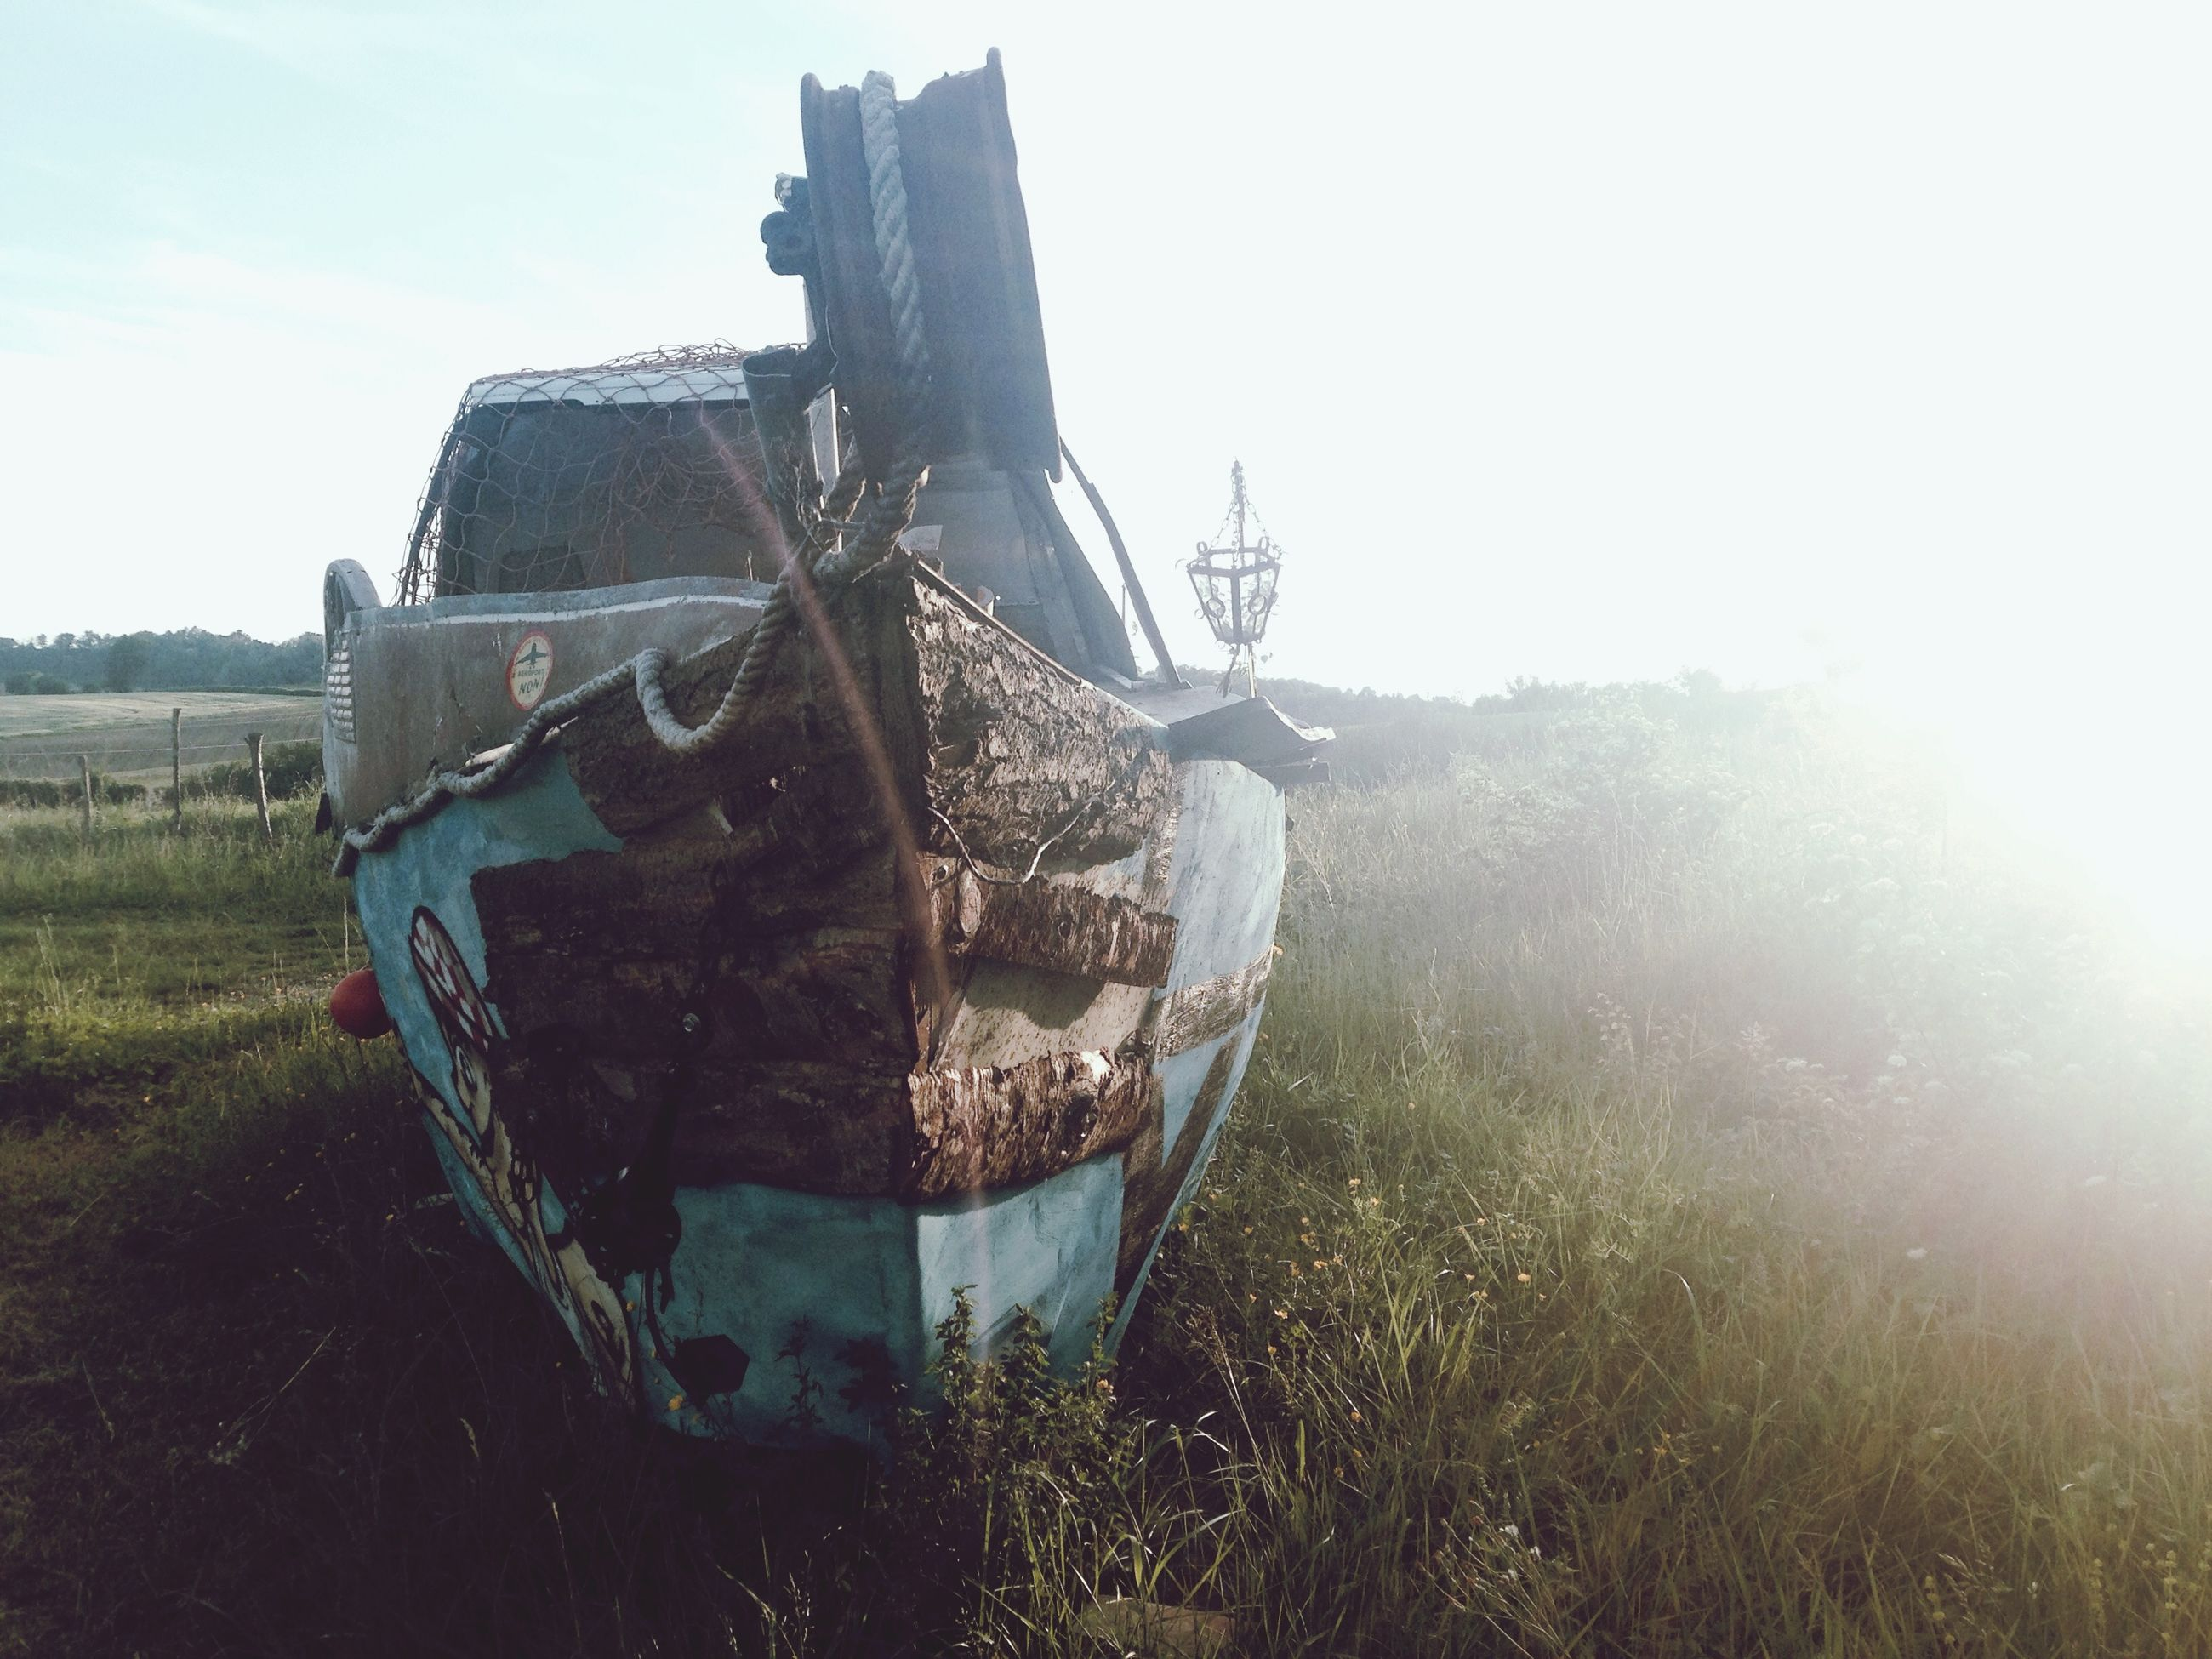 sky, field, clear sky, sunlight, grass, abandoned, damaged, day, landscape, built structure, outdoors, rural scene, nature, architecture, building exterior, obsolete, run-down, tranquility